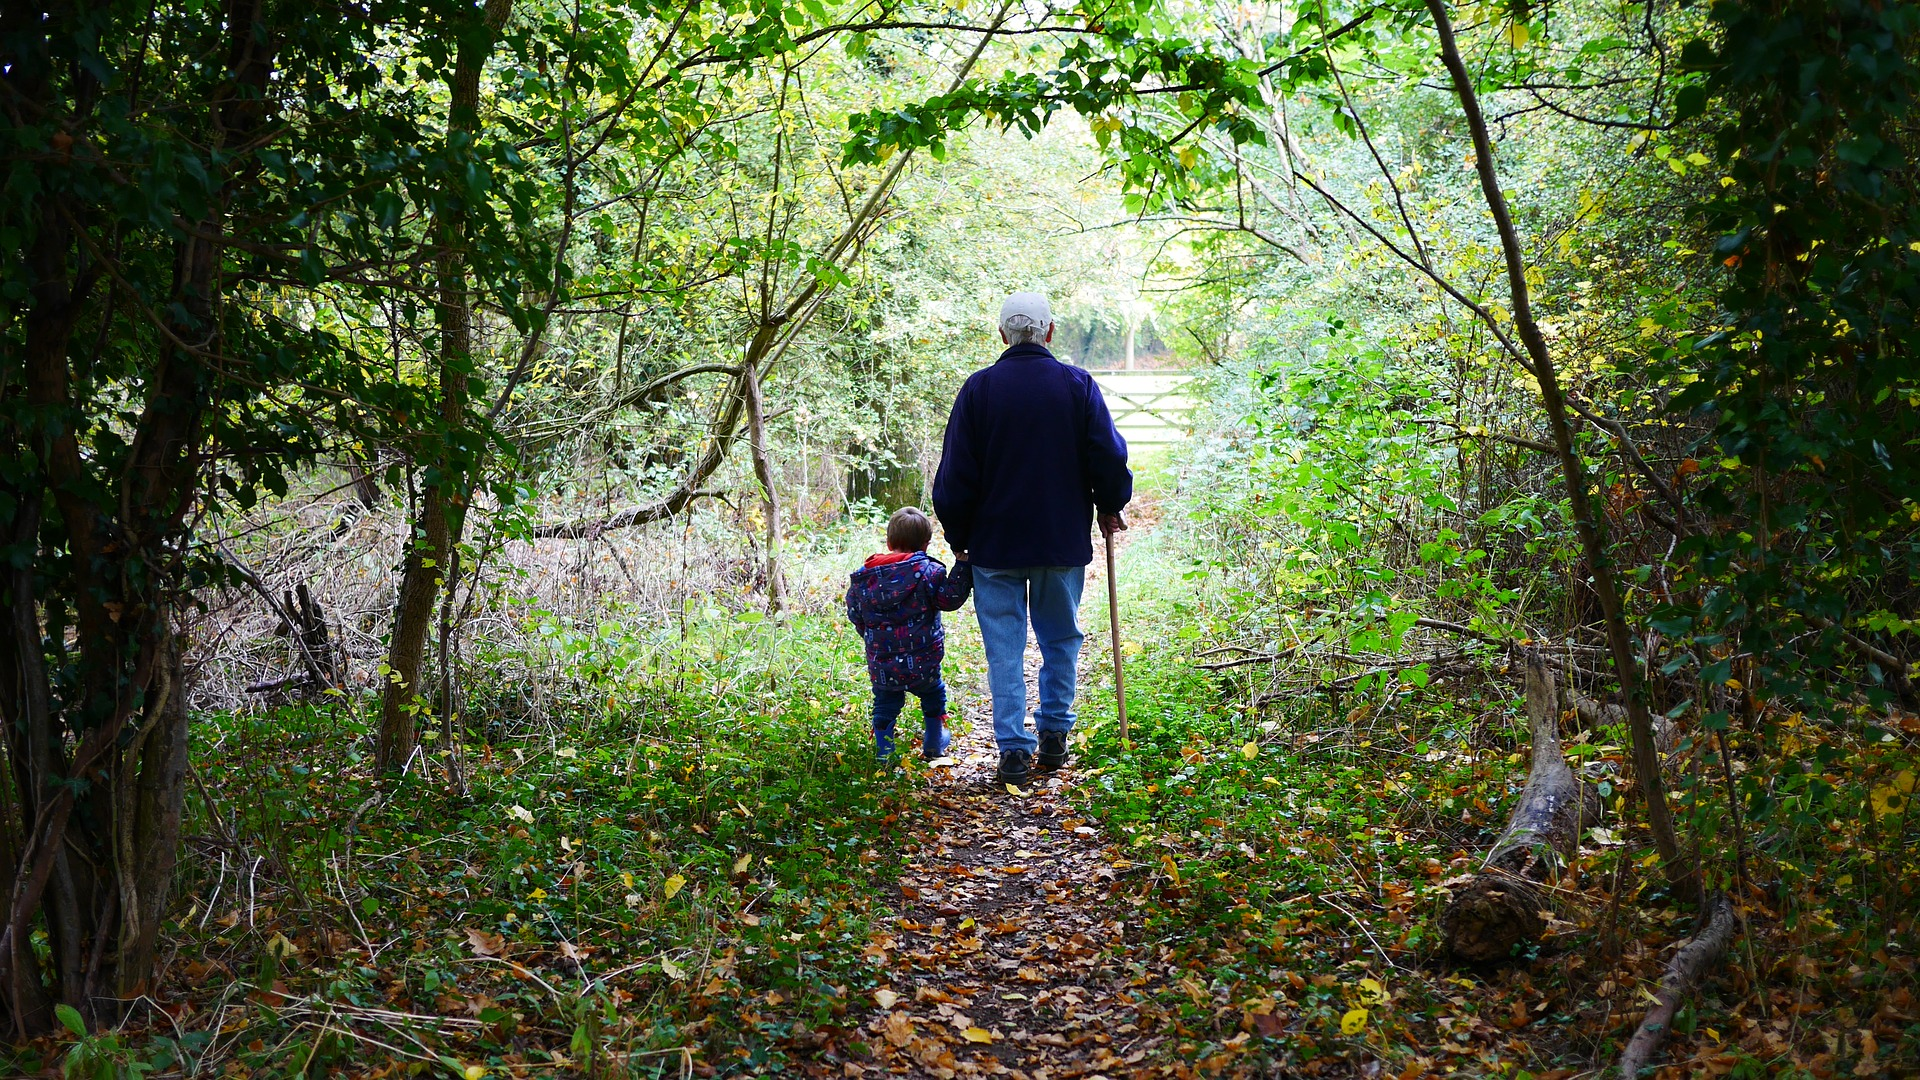 Grandparents plant the seed, knowing full well they may not see the fruit of their harvest.